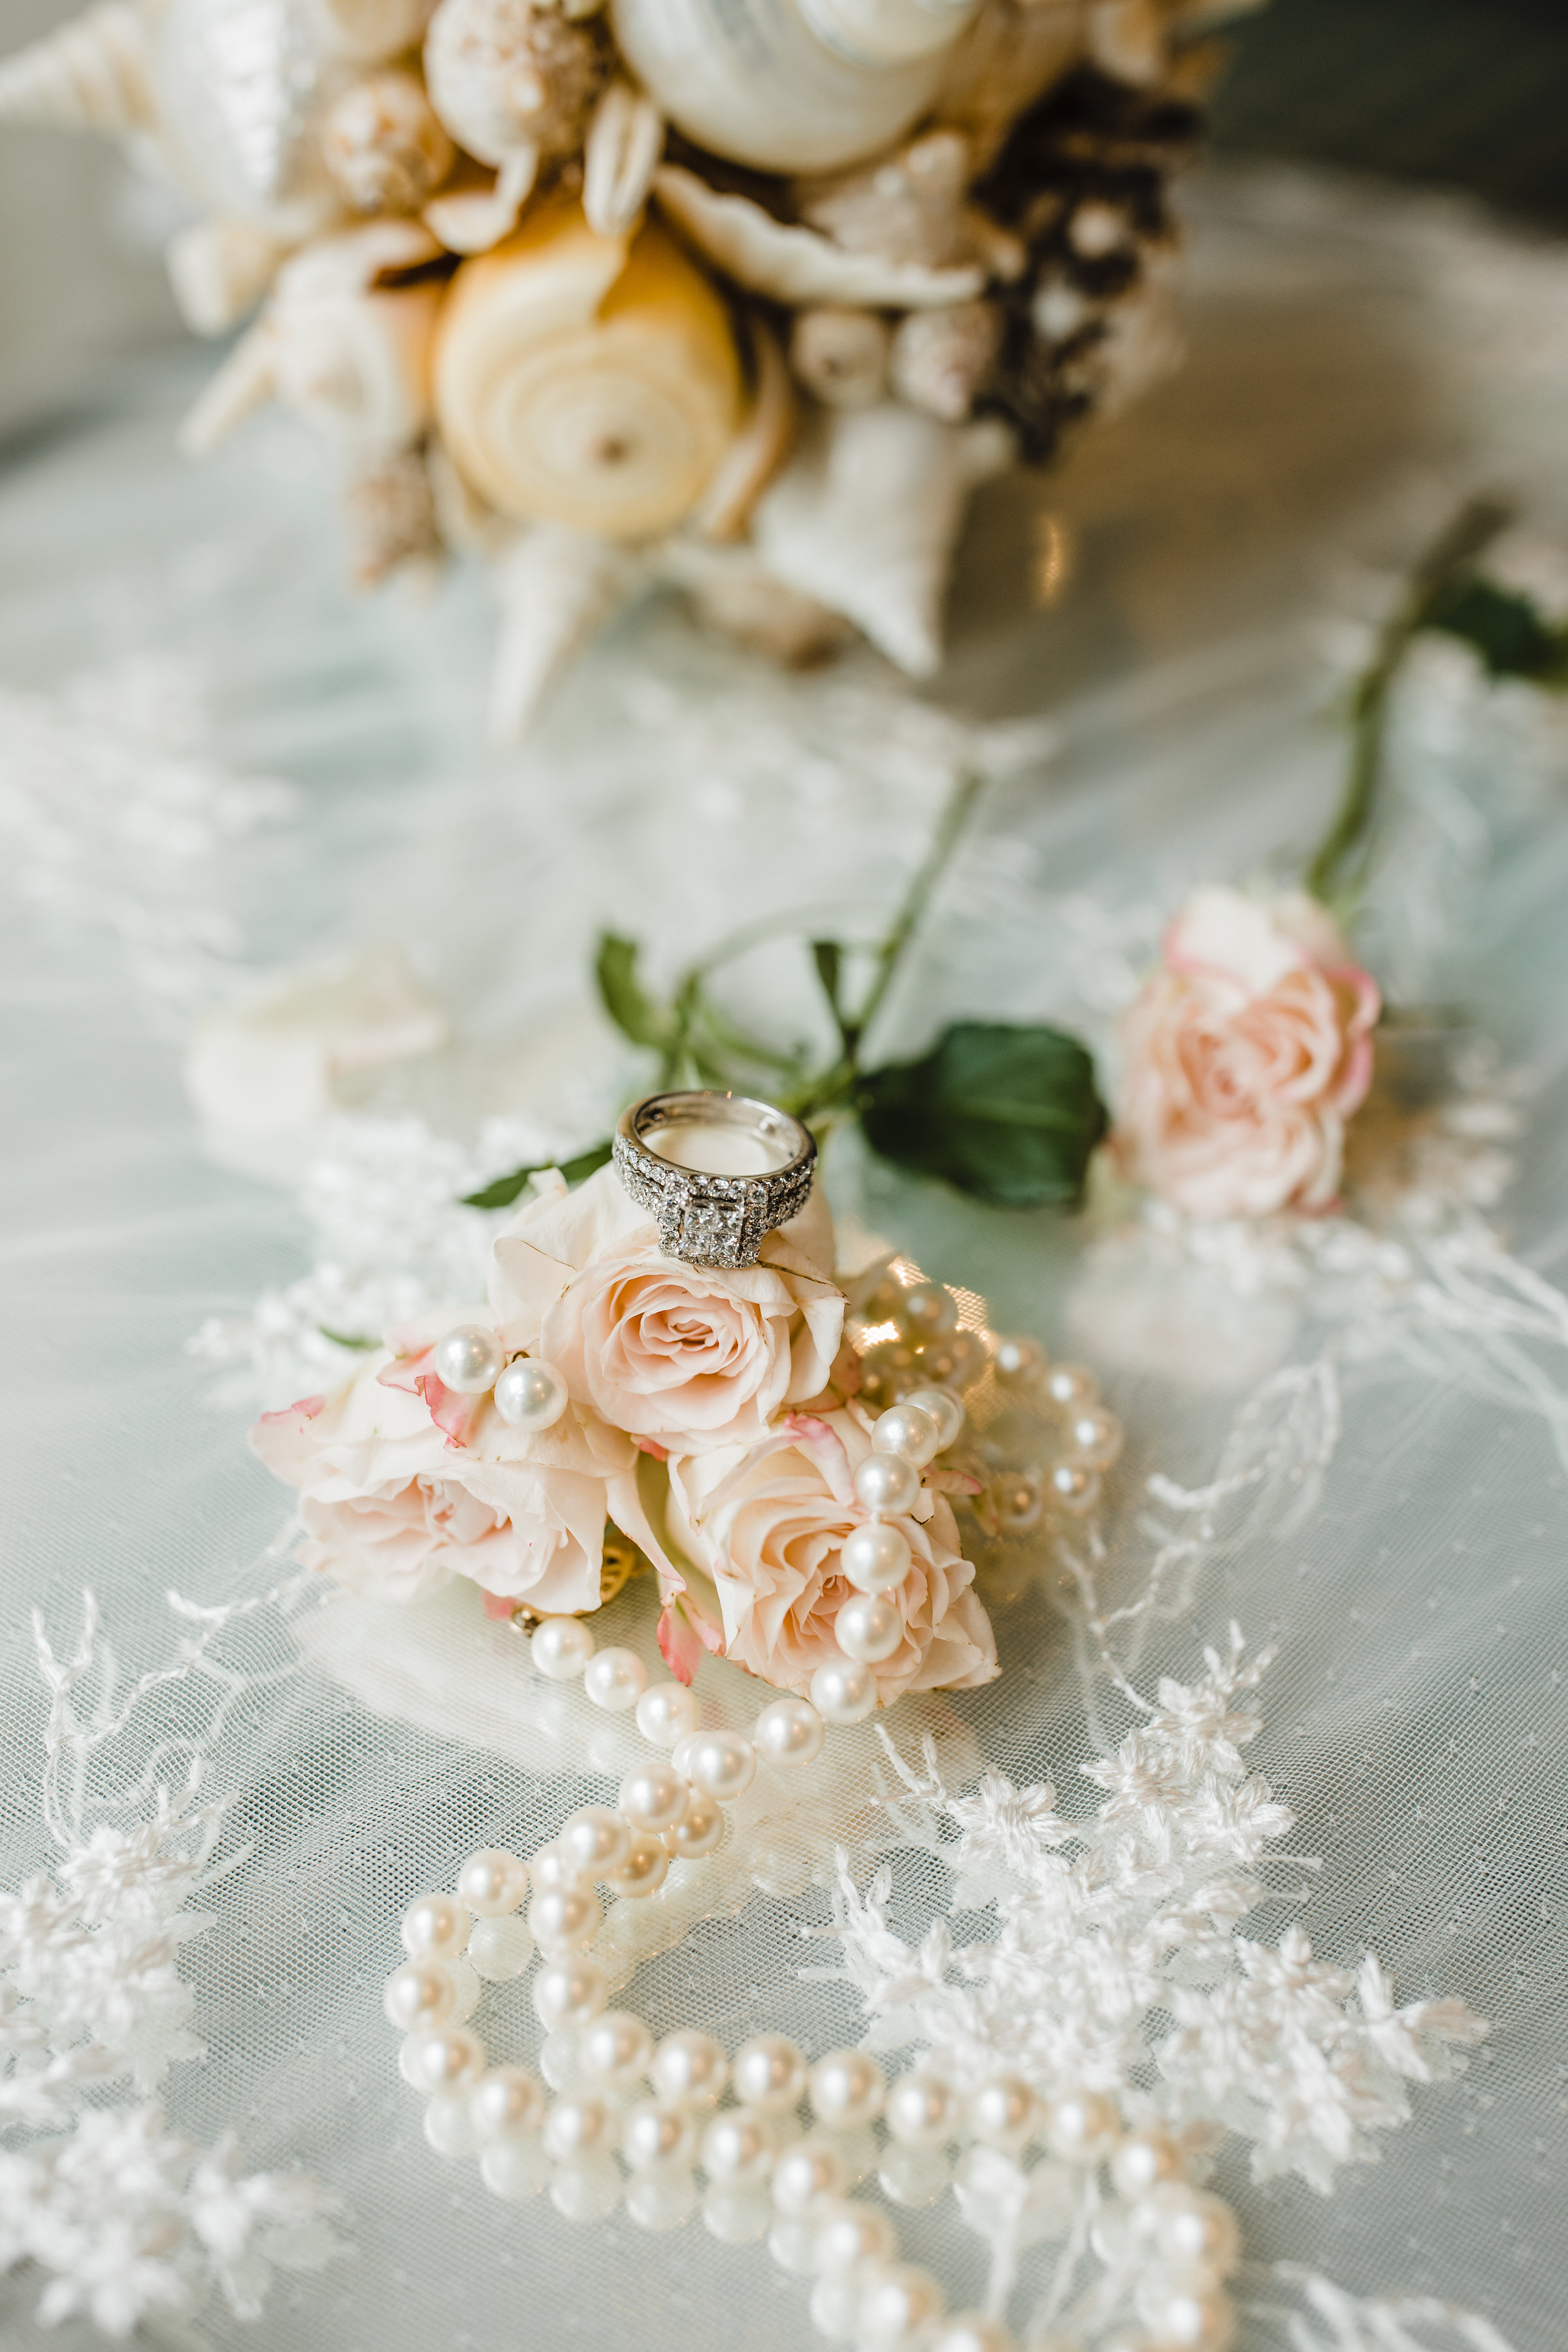 utah valley wedding photographer wedding details pink roses pearl necklace delicate lace wedding ring